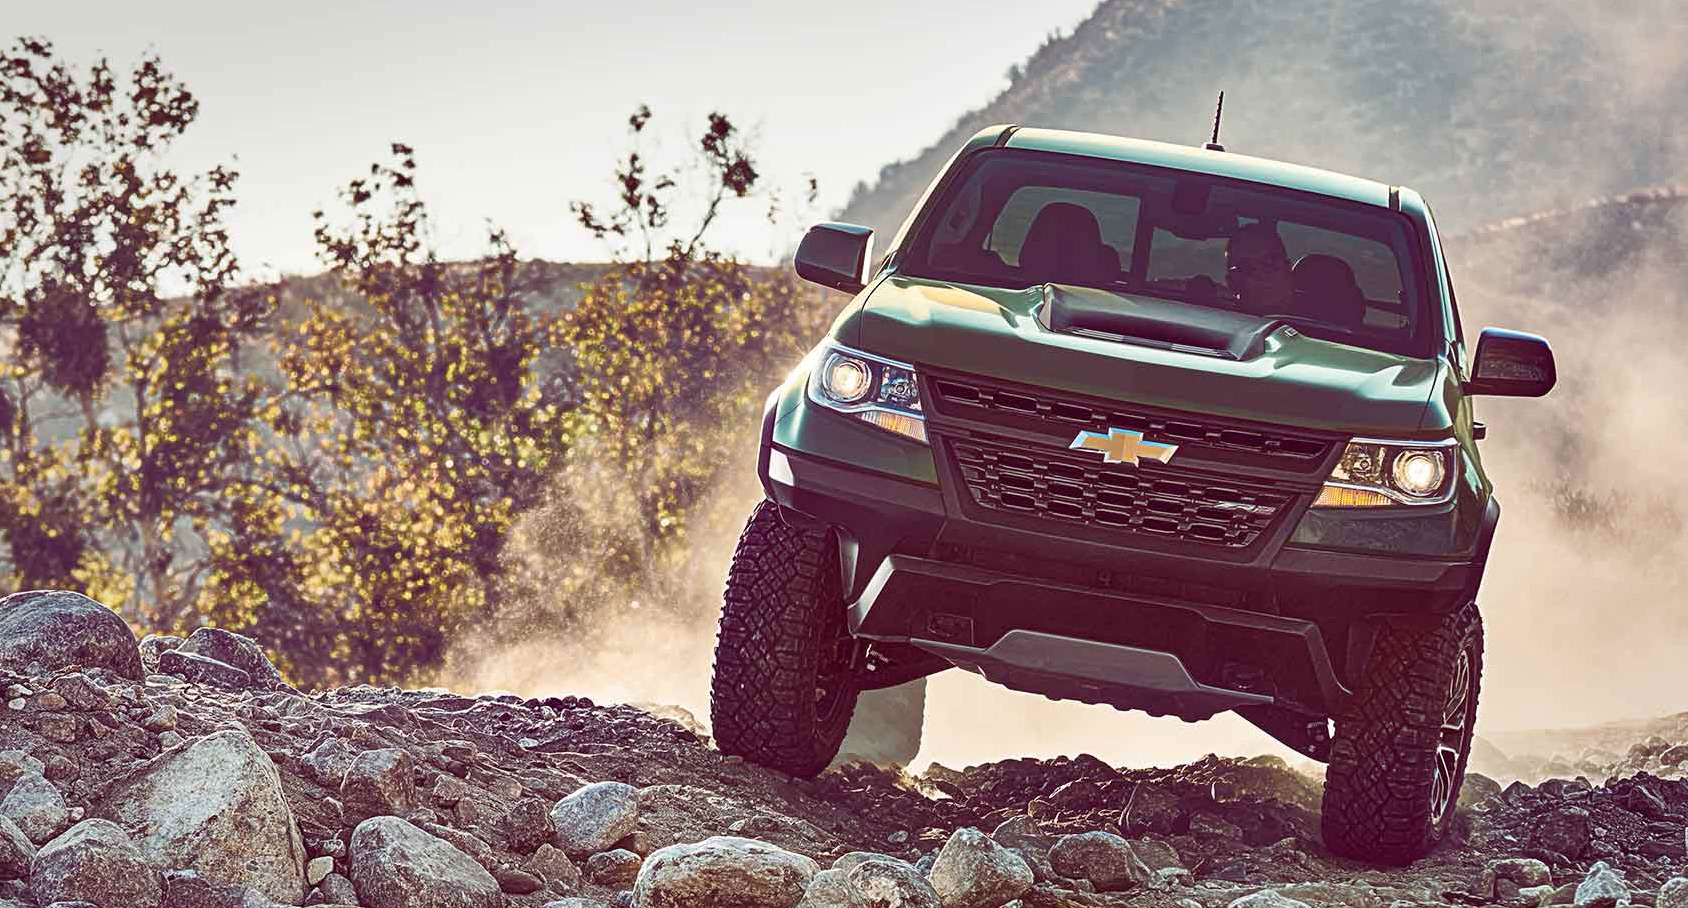 Valley Chevy - Man Buying New Chevrolet Vehicle: Colorado